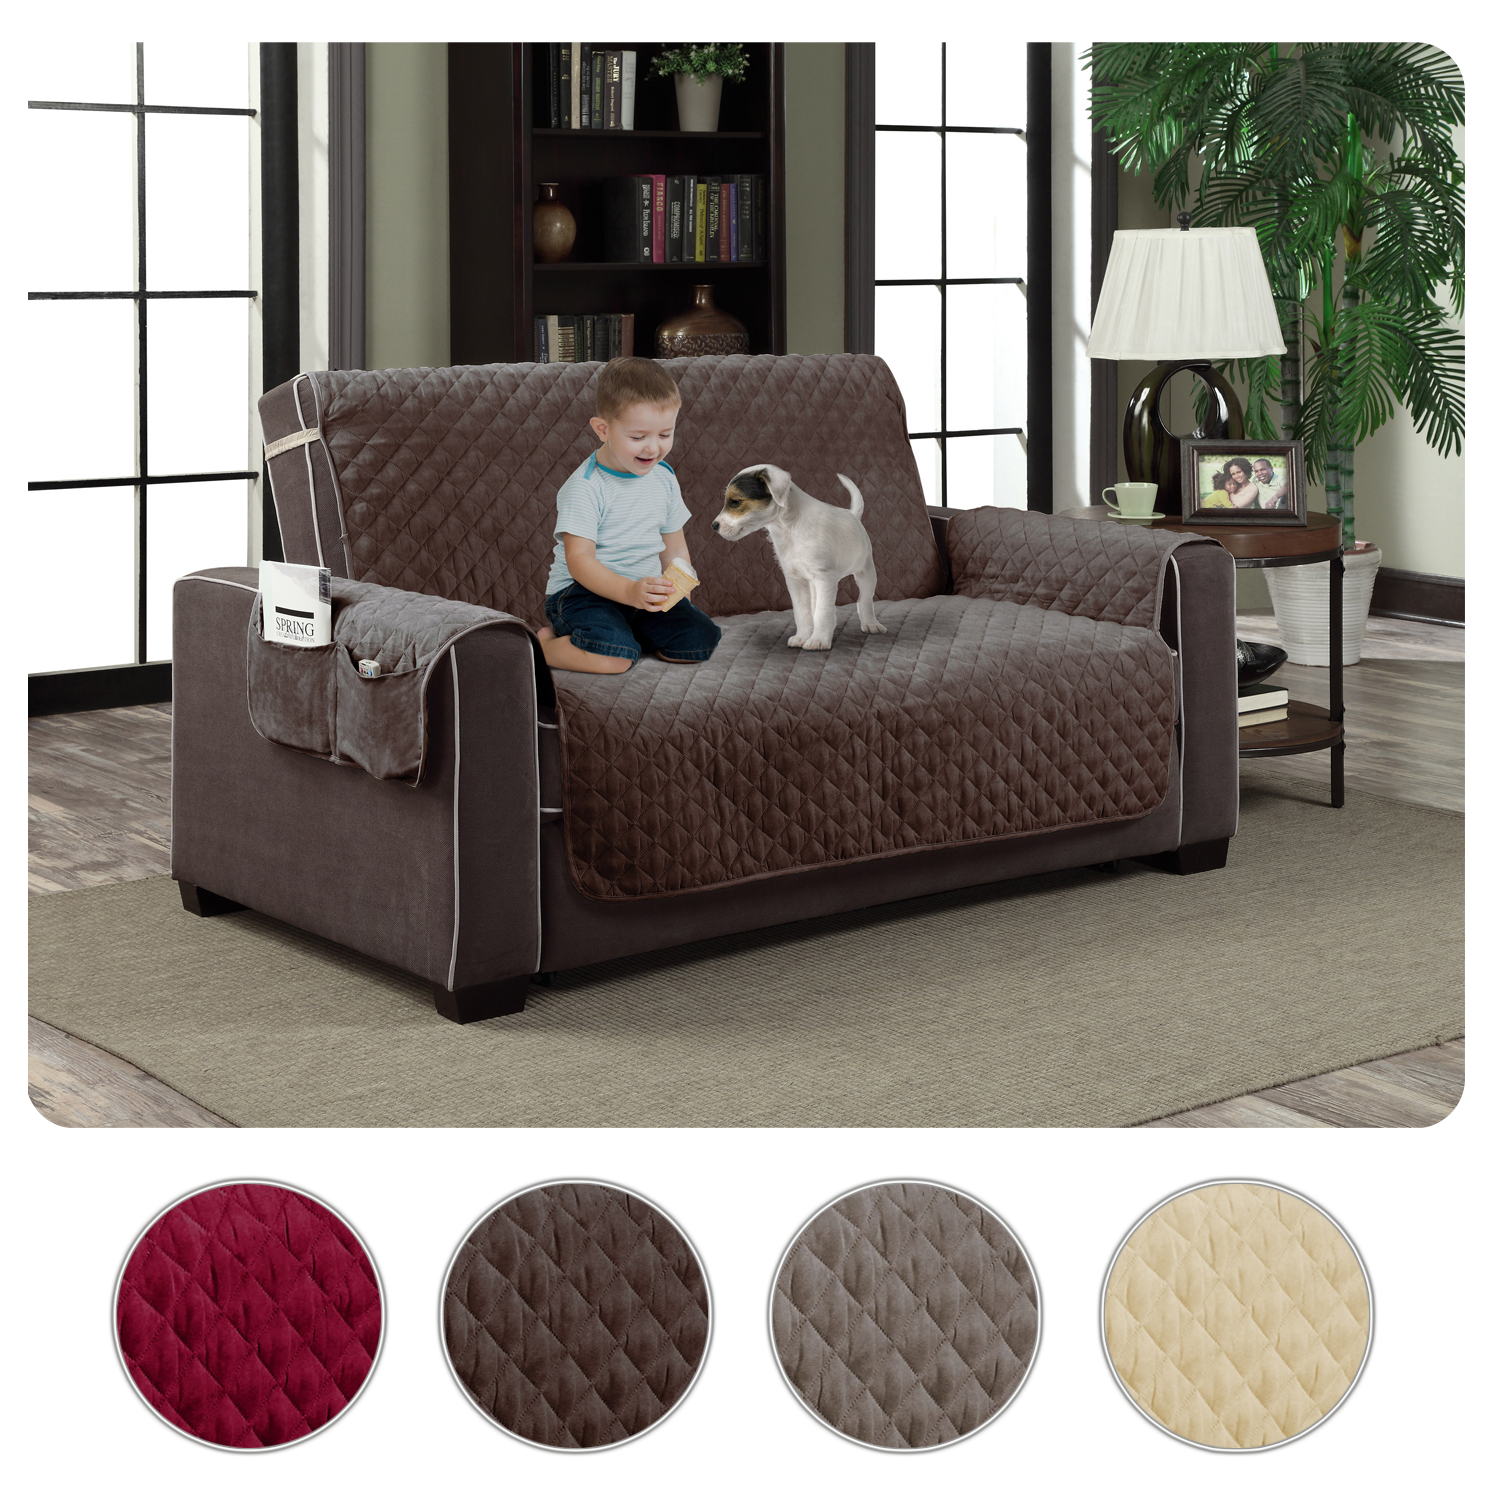 sofas for dogs uk sectional vs sofa set micro suede slipcover pockets pet dog couch furniture